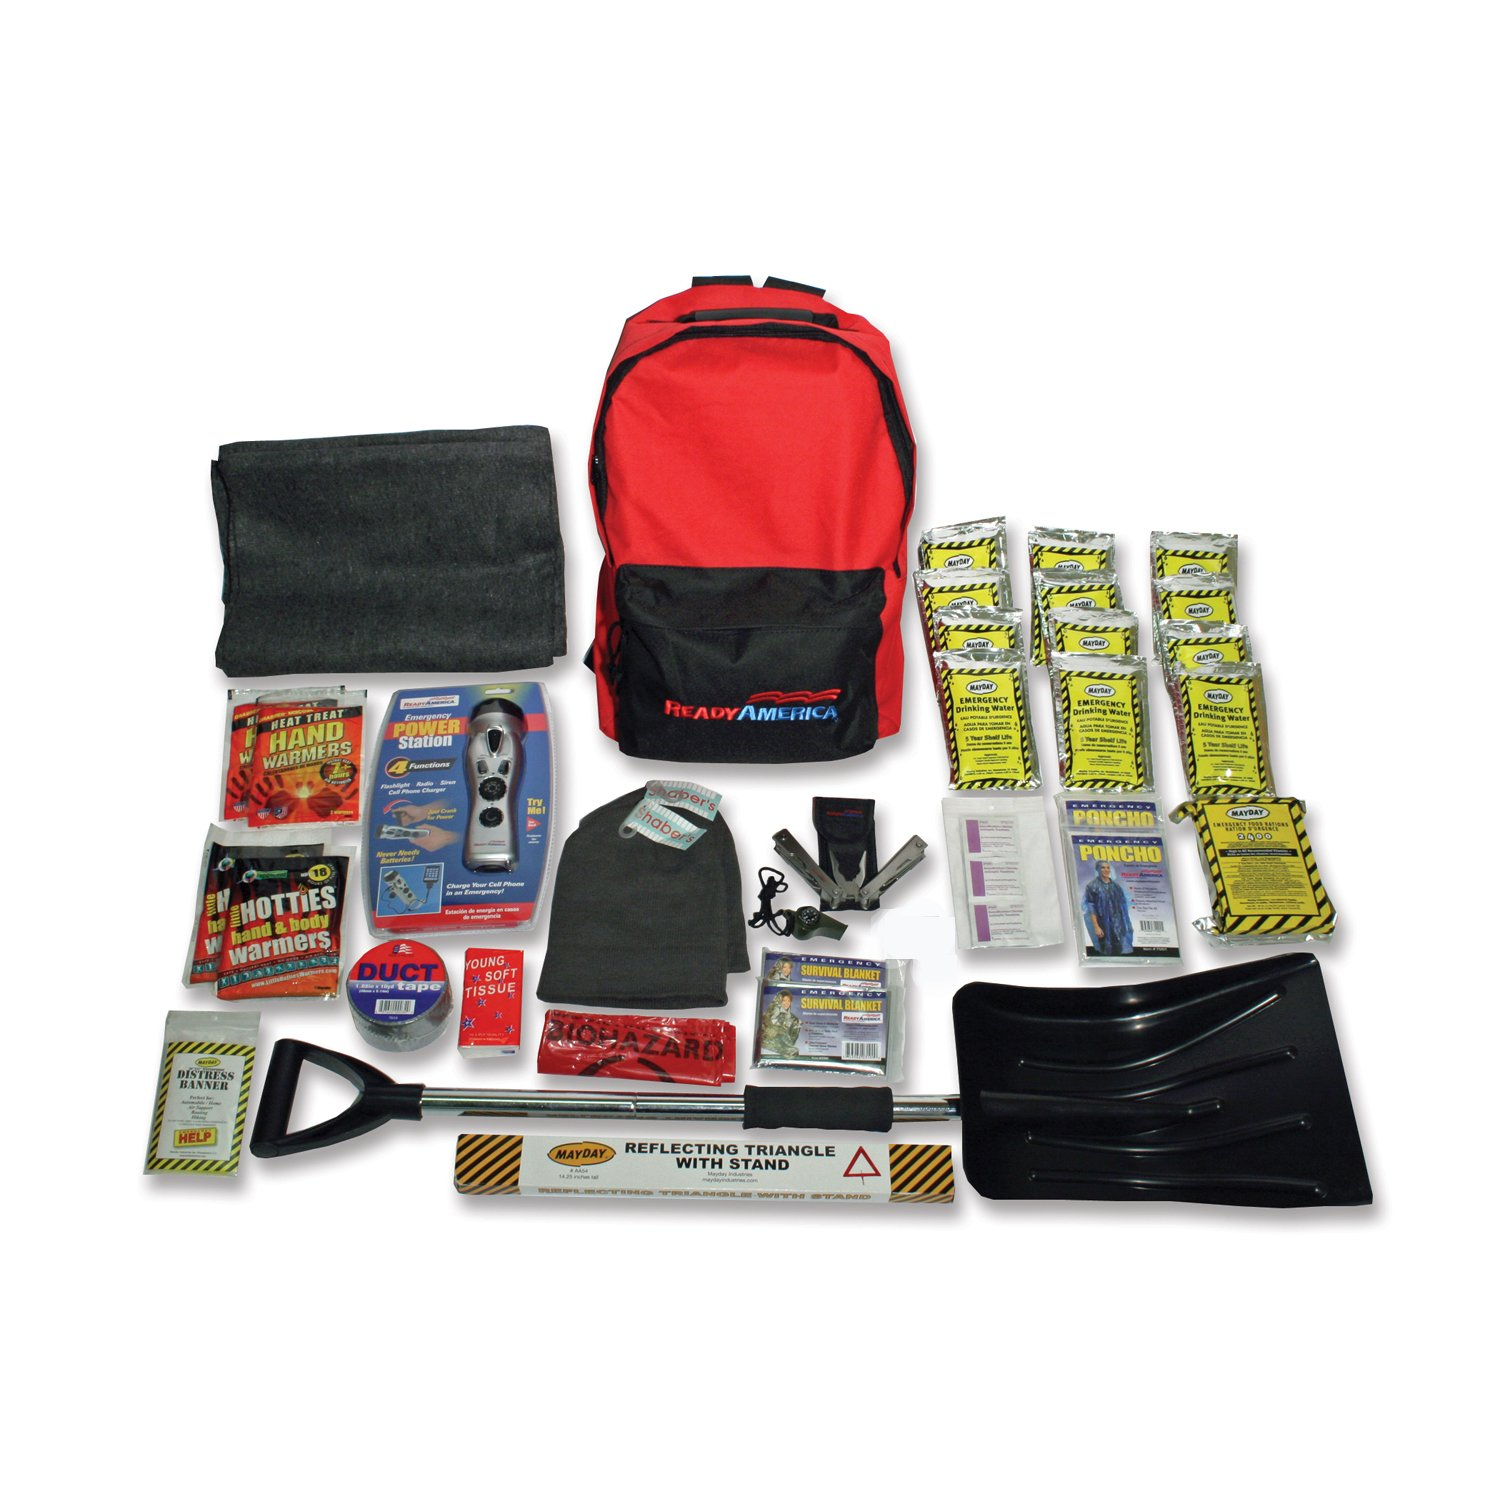 Ready America 70410 Cold Weather Survival Kit for Two Person